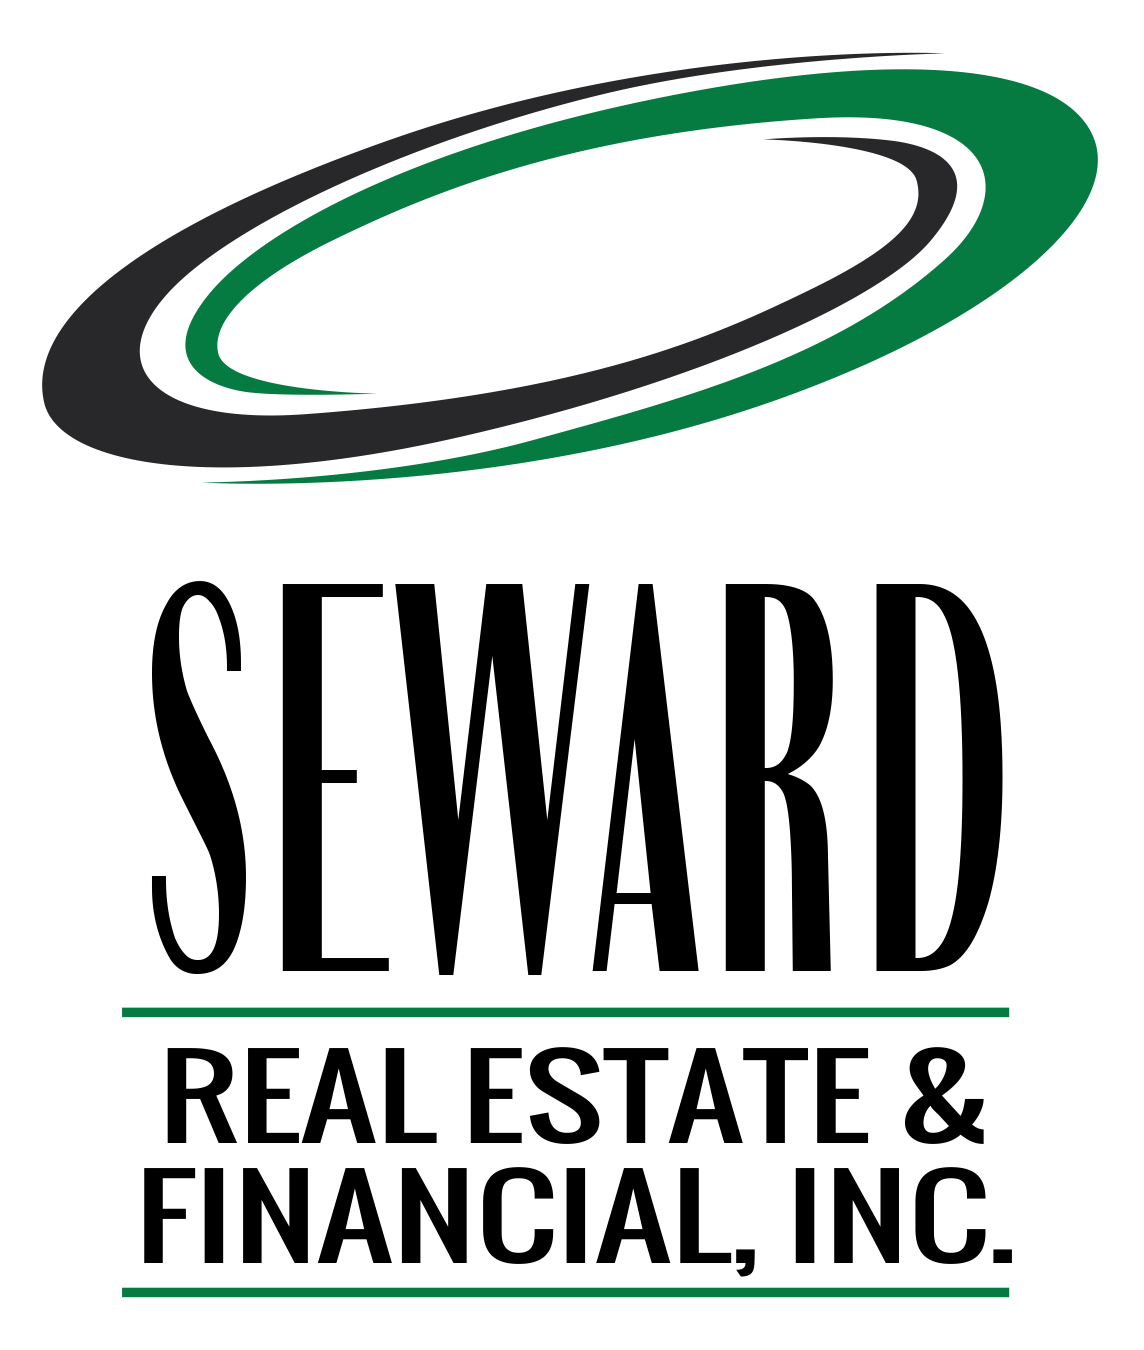 Seward Real Estate & Financial, Inc.